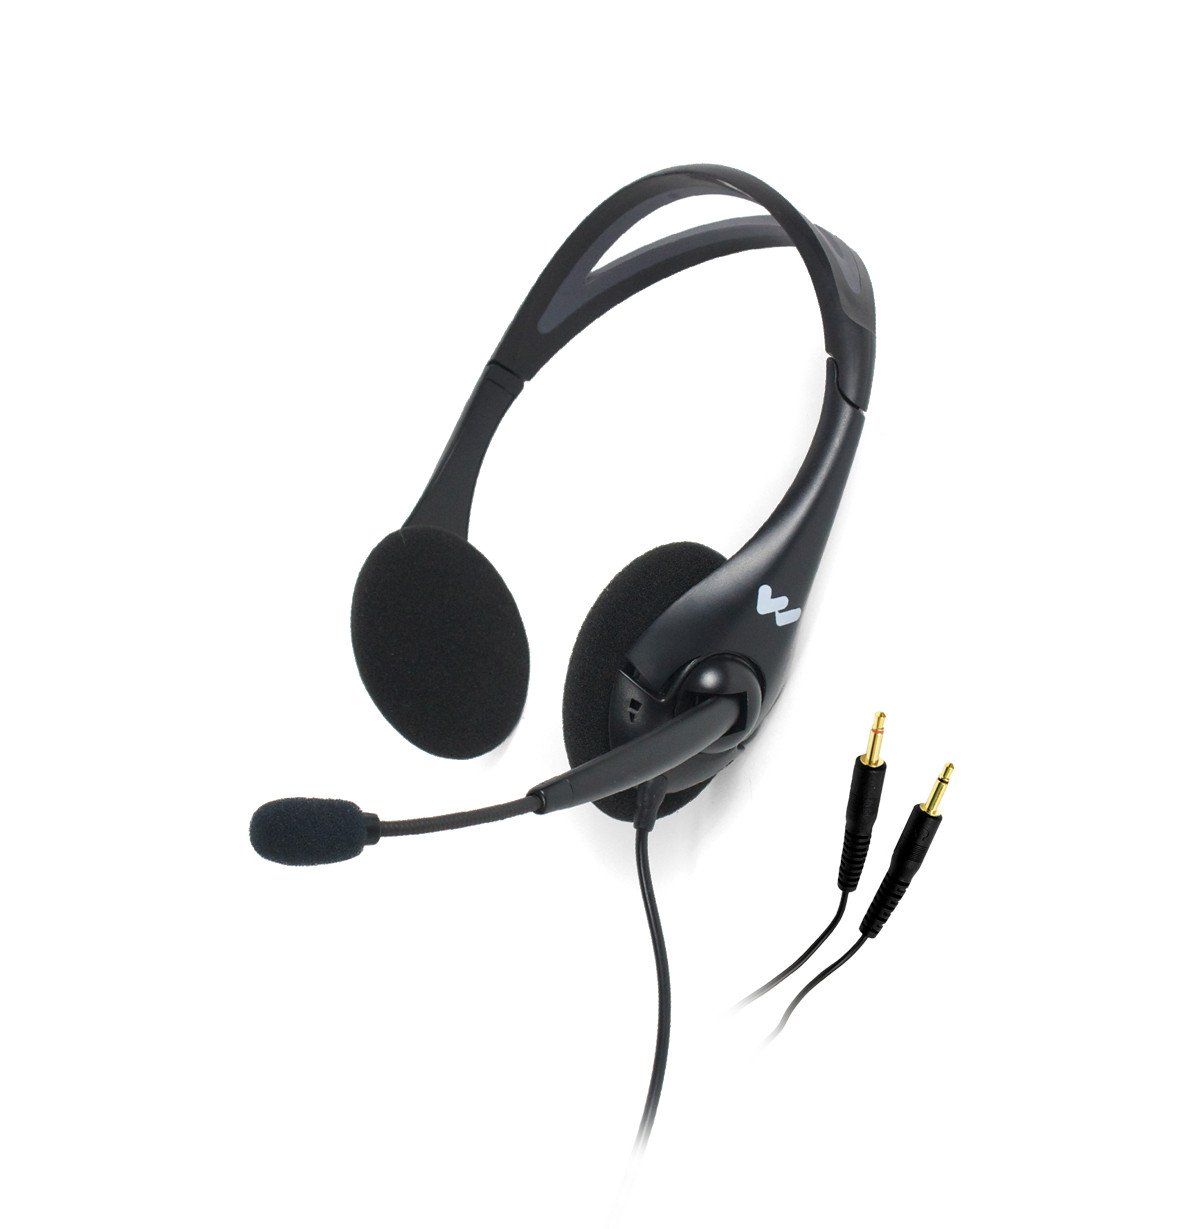 Dual Ear Noise-Canceling Headset MIcrophone with 3.5mm Connector